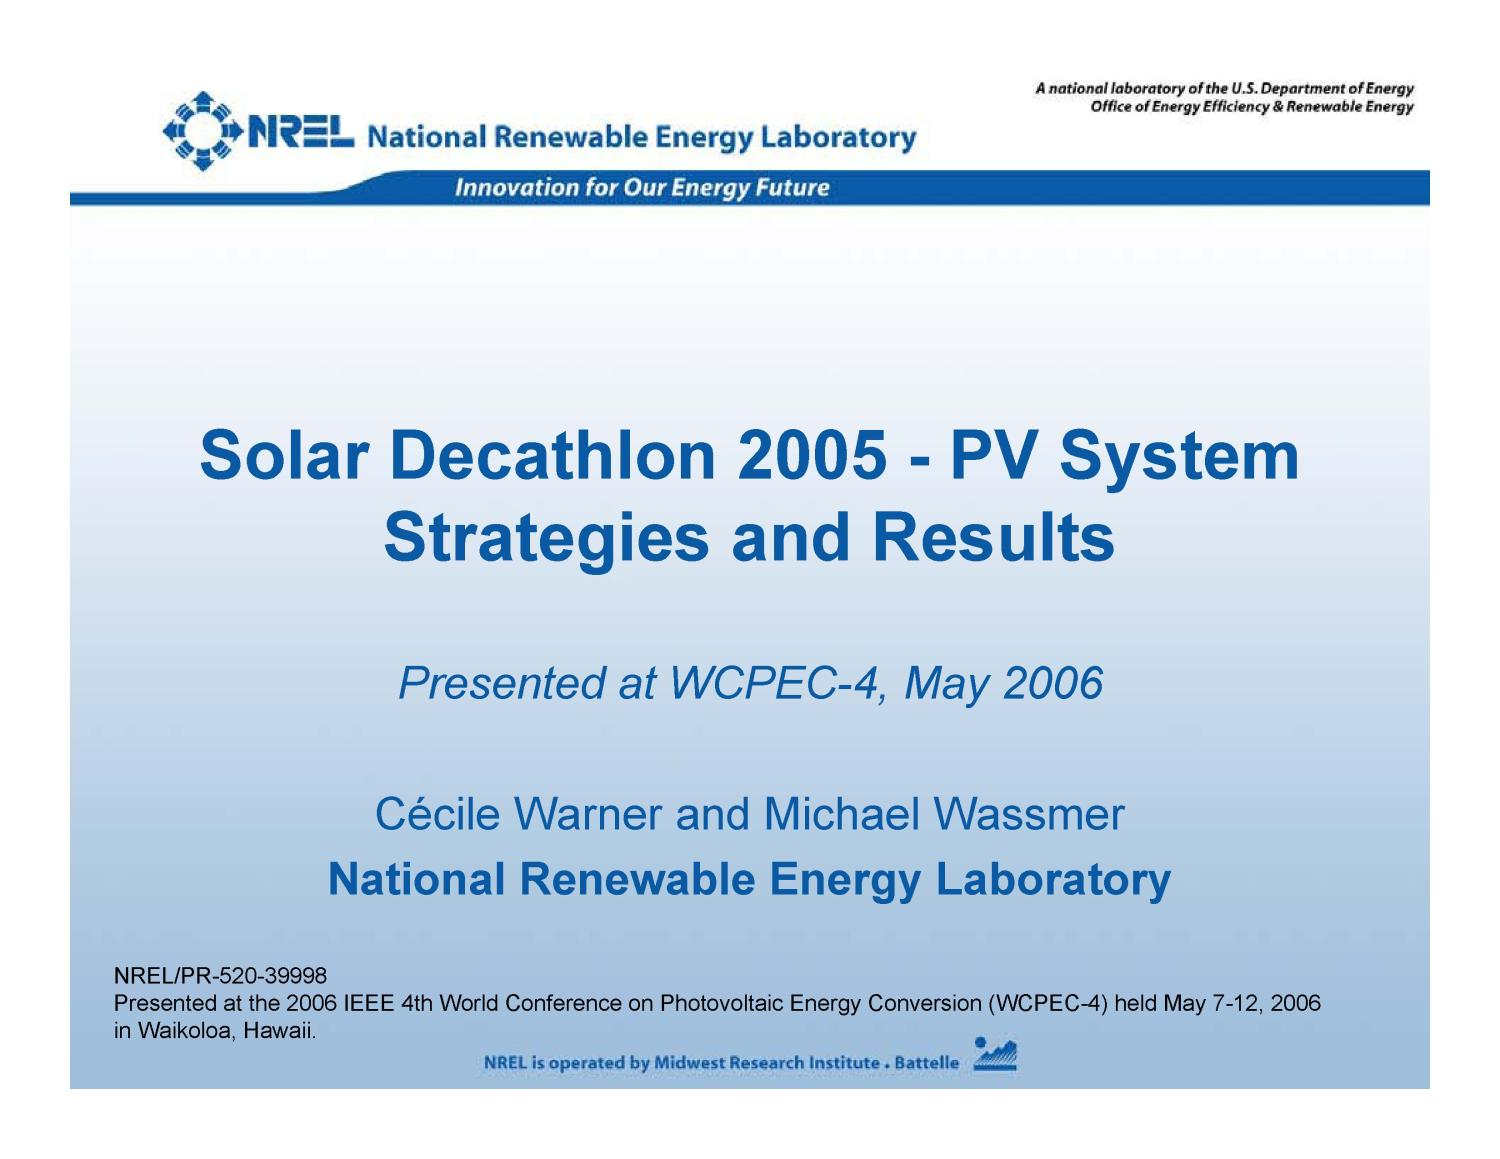 Solar Decathlon 2005 - PV System Strategies and Results (Presentation)                                                                                                      [Sequence #]: 1 of 67